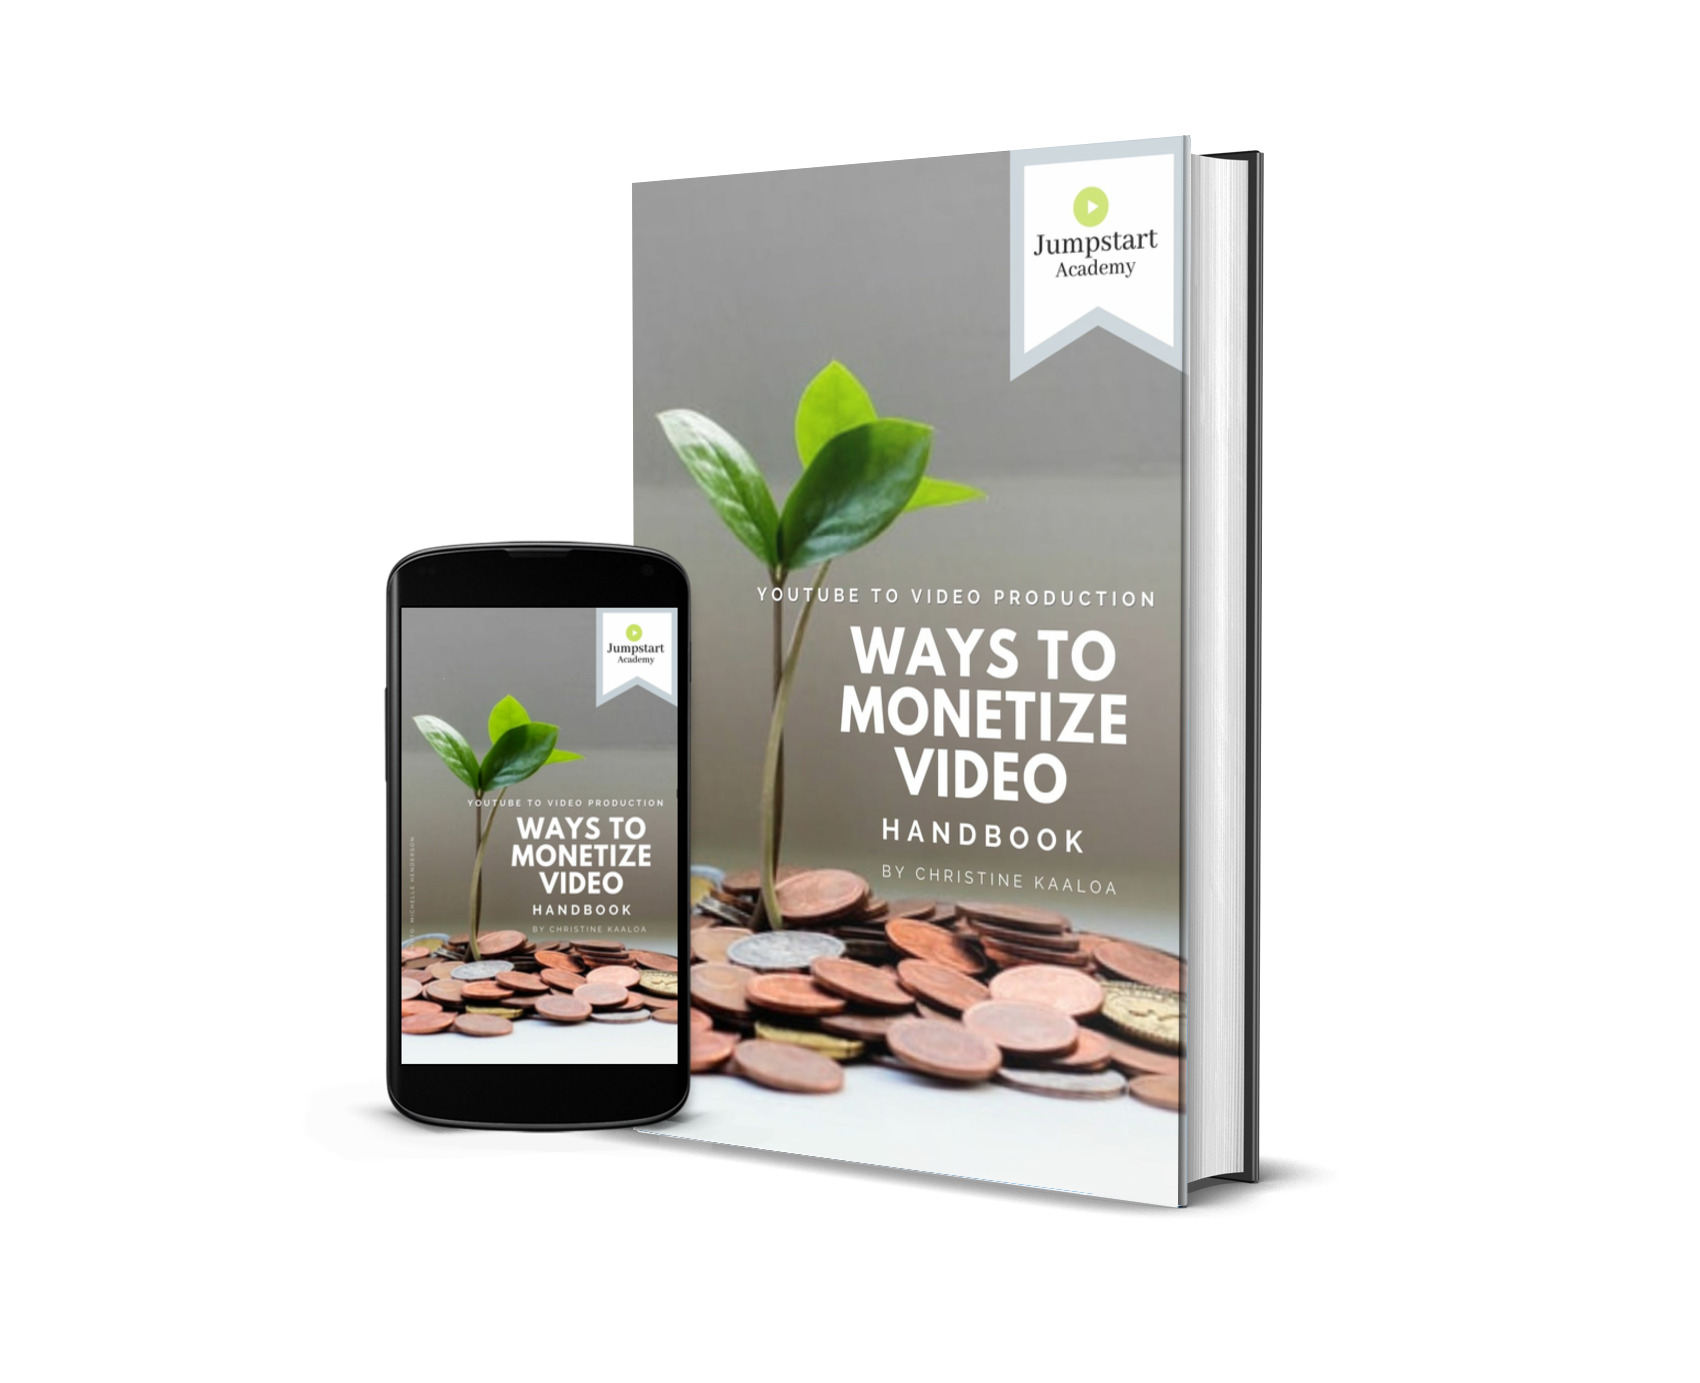 Ways to Monetize Video with YouTube to Video Production handbook-combo